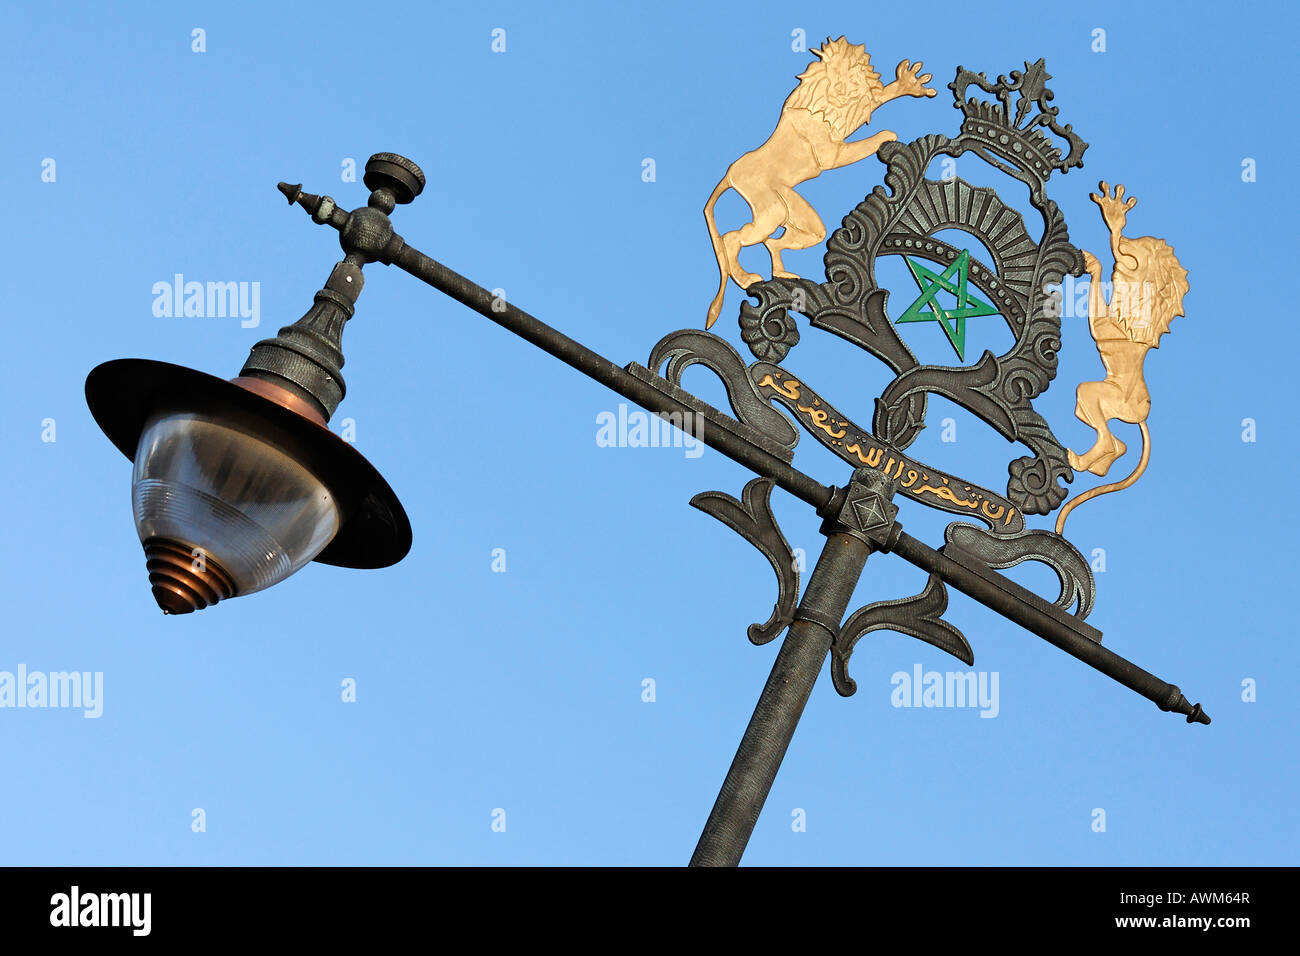 Moroccan coat of arms on a street lamp, Marrakech, Morocco, Africa Stock Photo